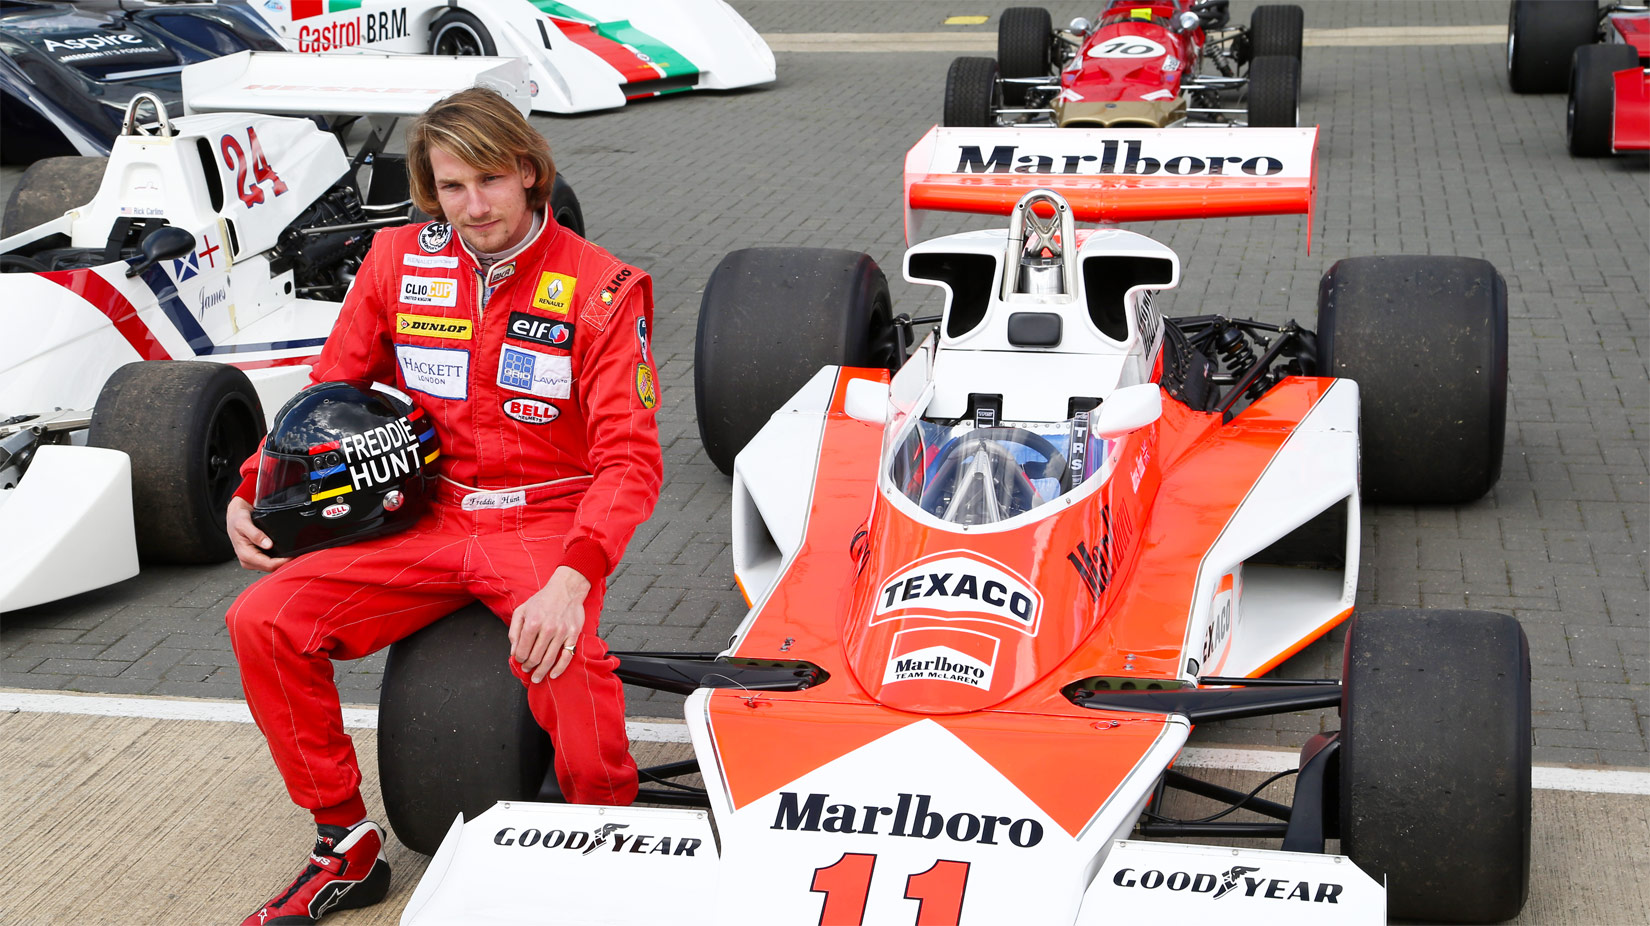 Silverstone Classic 2016 To Pay Homage To James Hunt's 1976 F1 Title